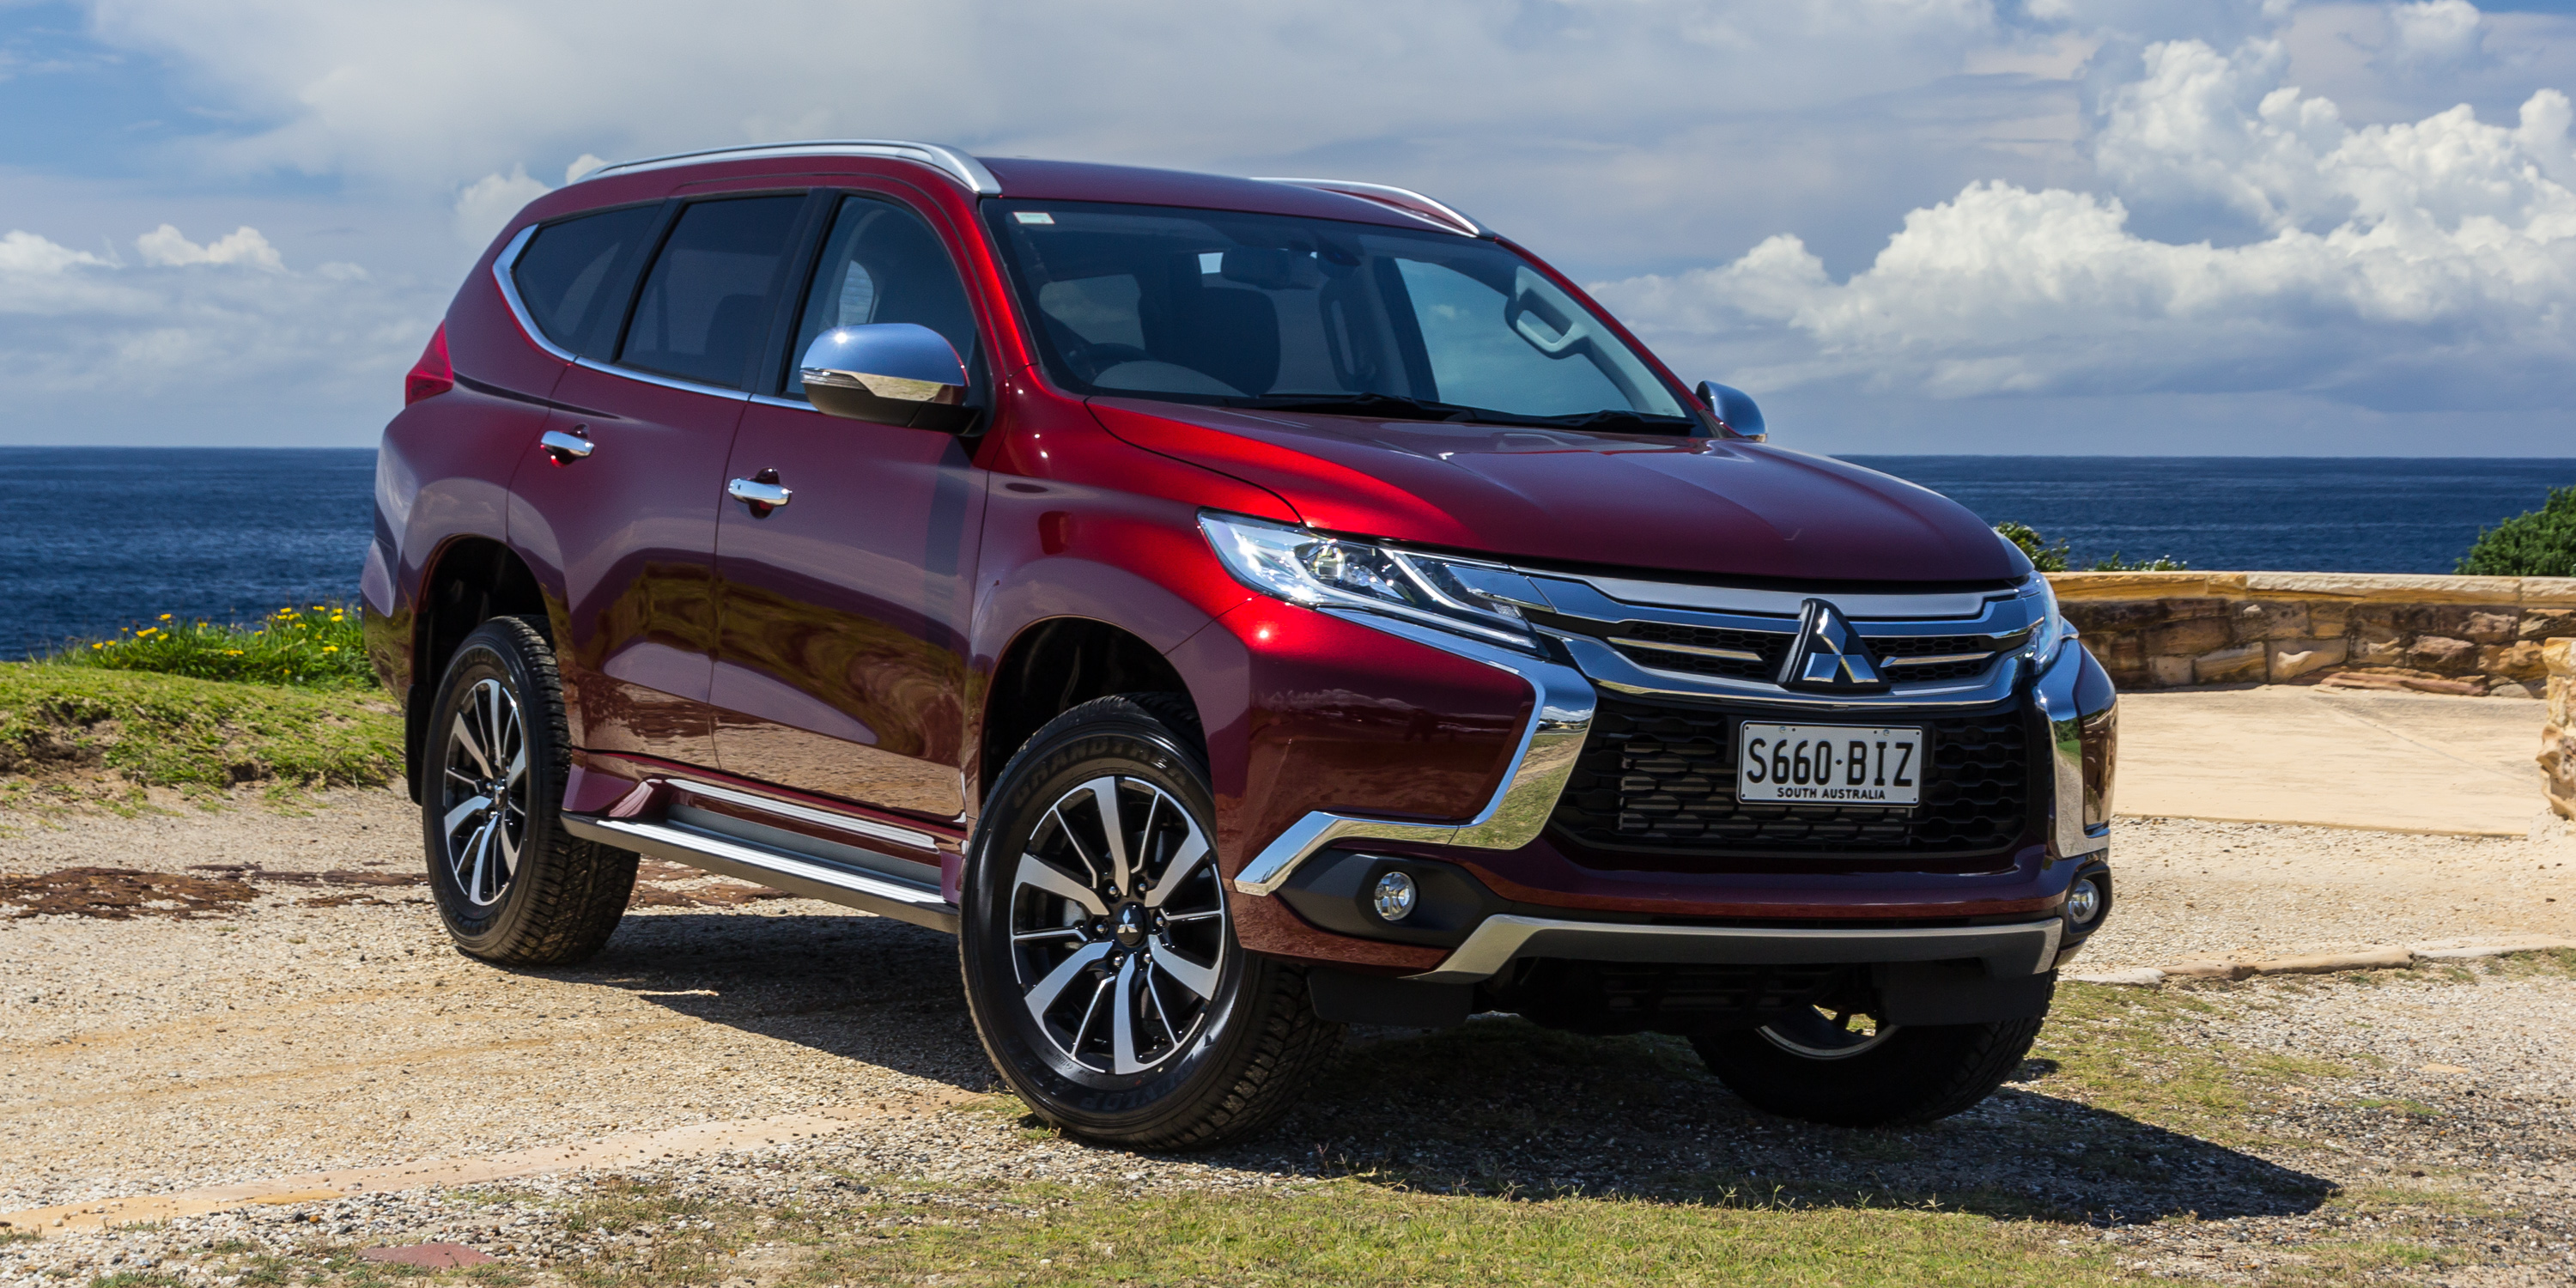 2016 Mitsubishi Pajero Sport Gls Review Photos Caradvice